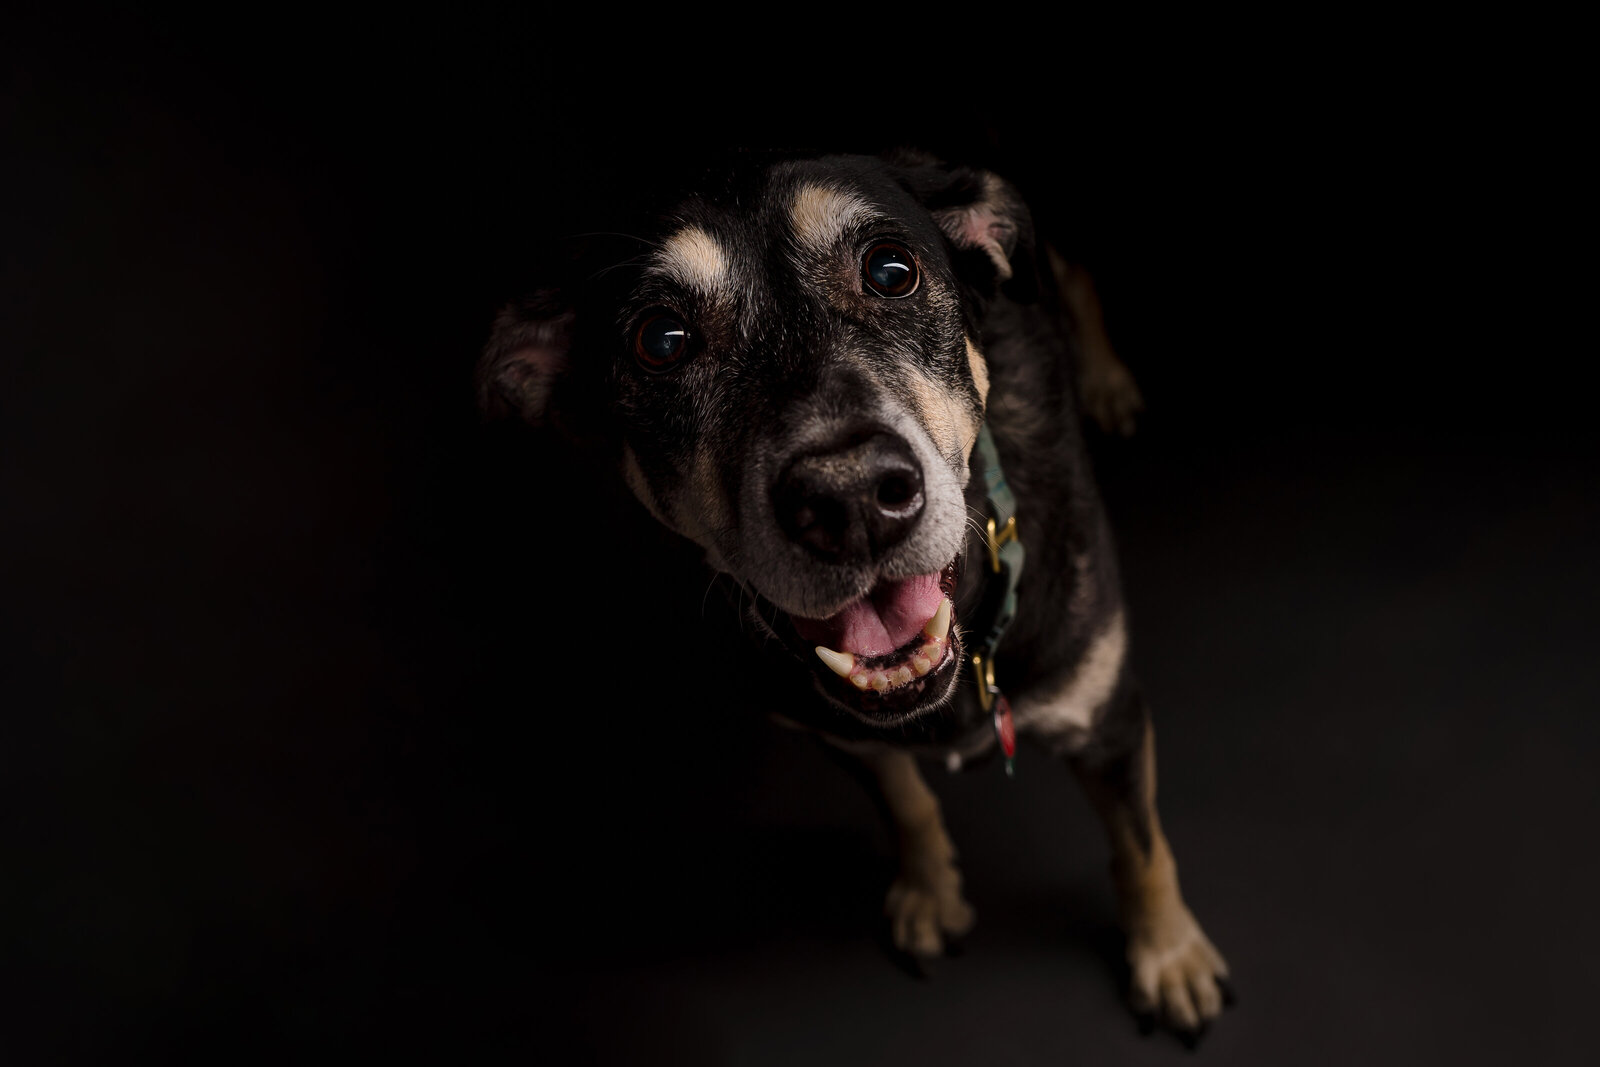 a black lab mix appears to be happy in a professional photo on a black backdrop